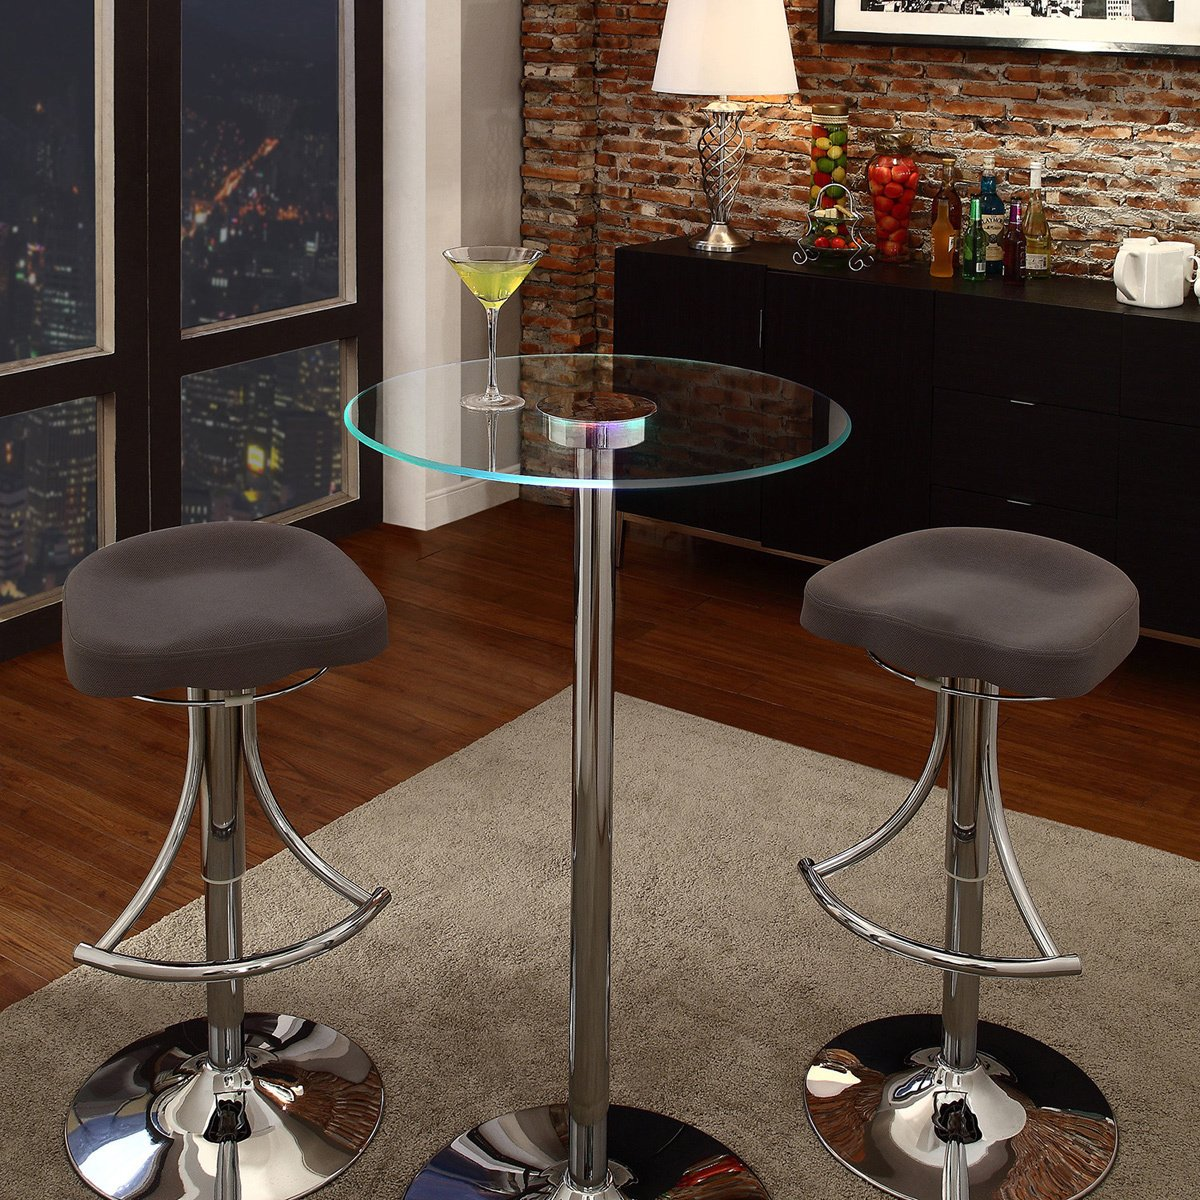 inspire lorin inch bar table led accent free caley counter height shipping today round mats boho coffee black dining chairs clear perspex acrylic tablecloth for square room side